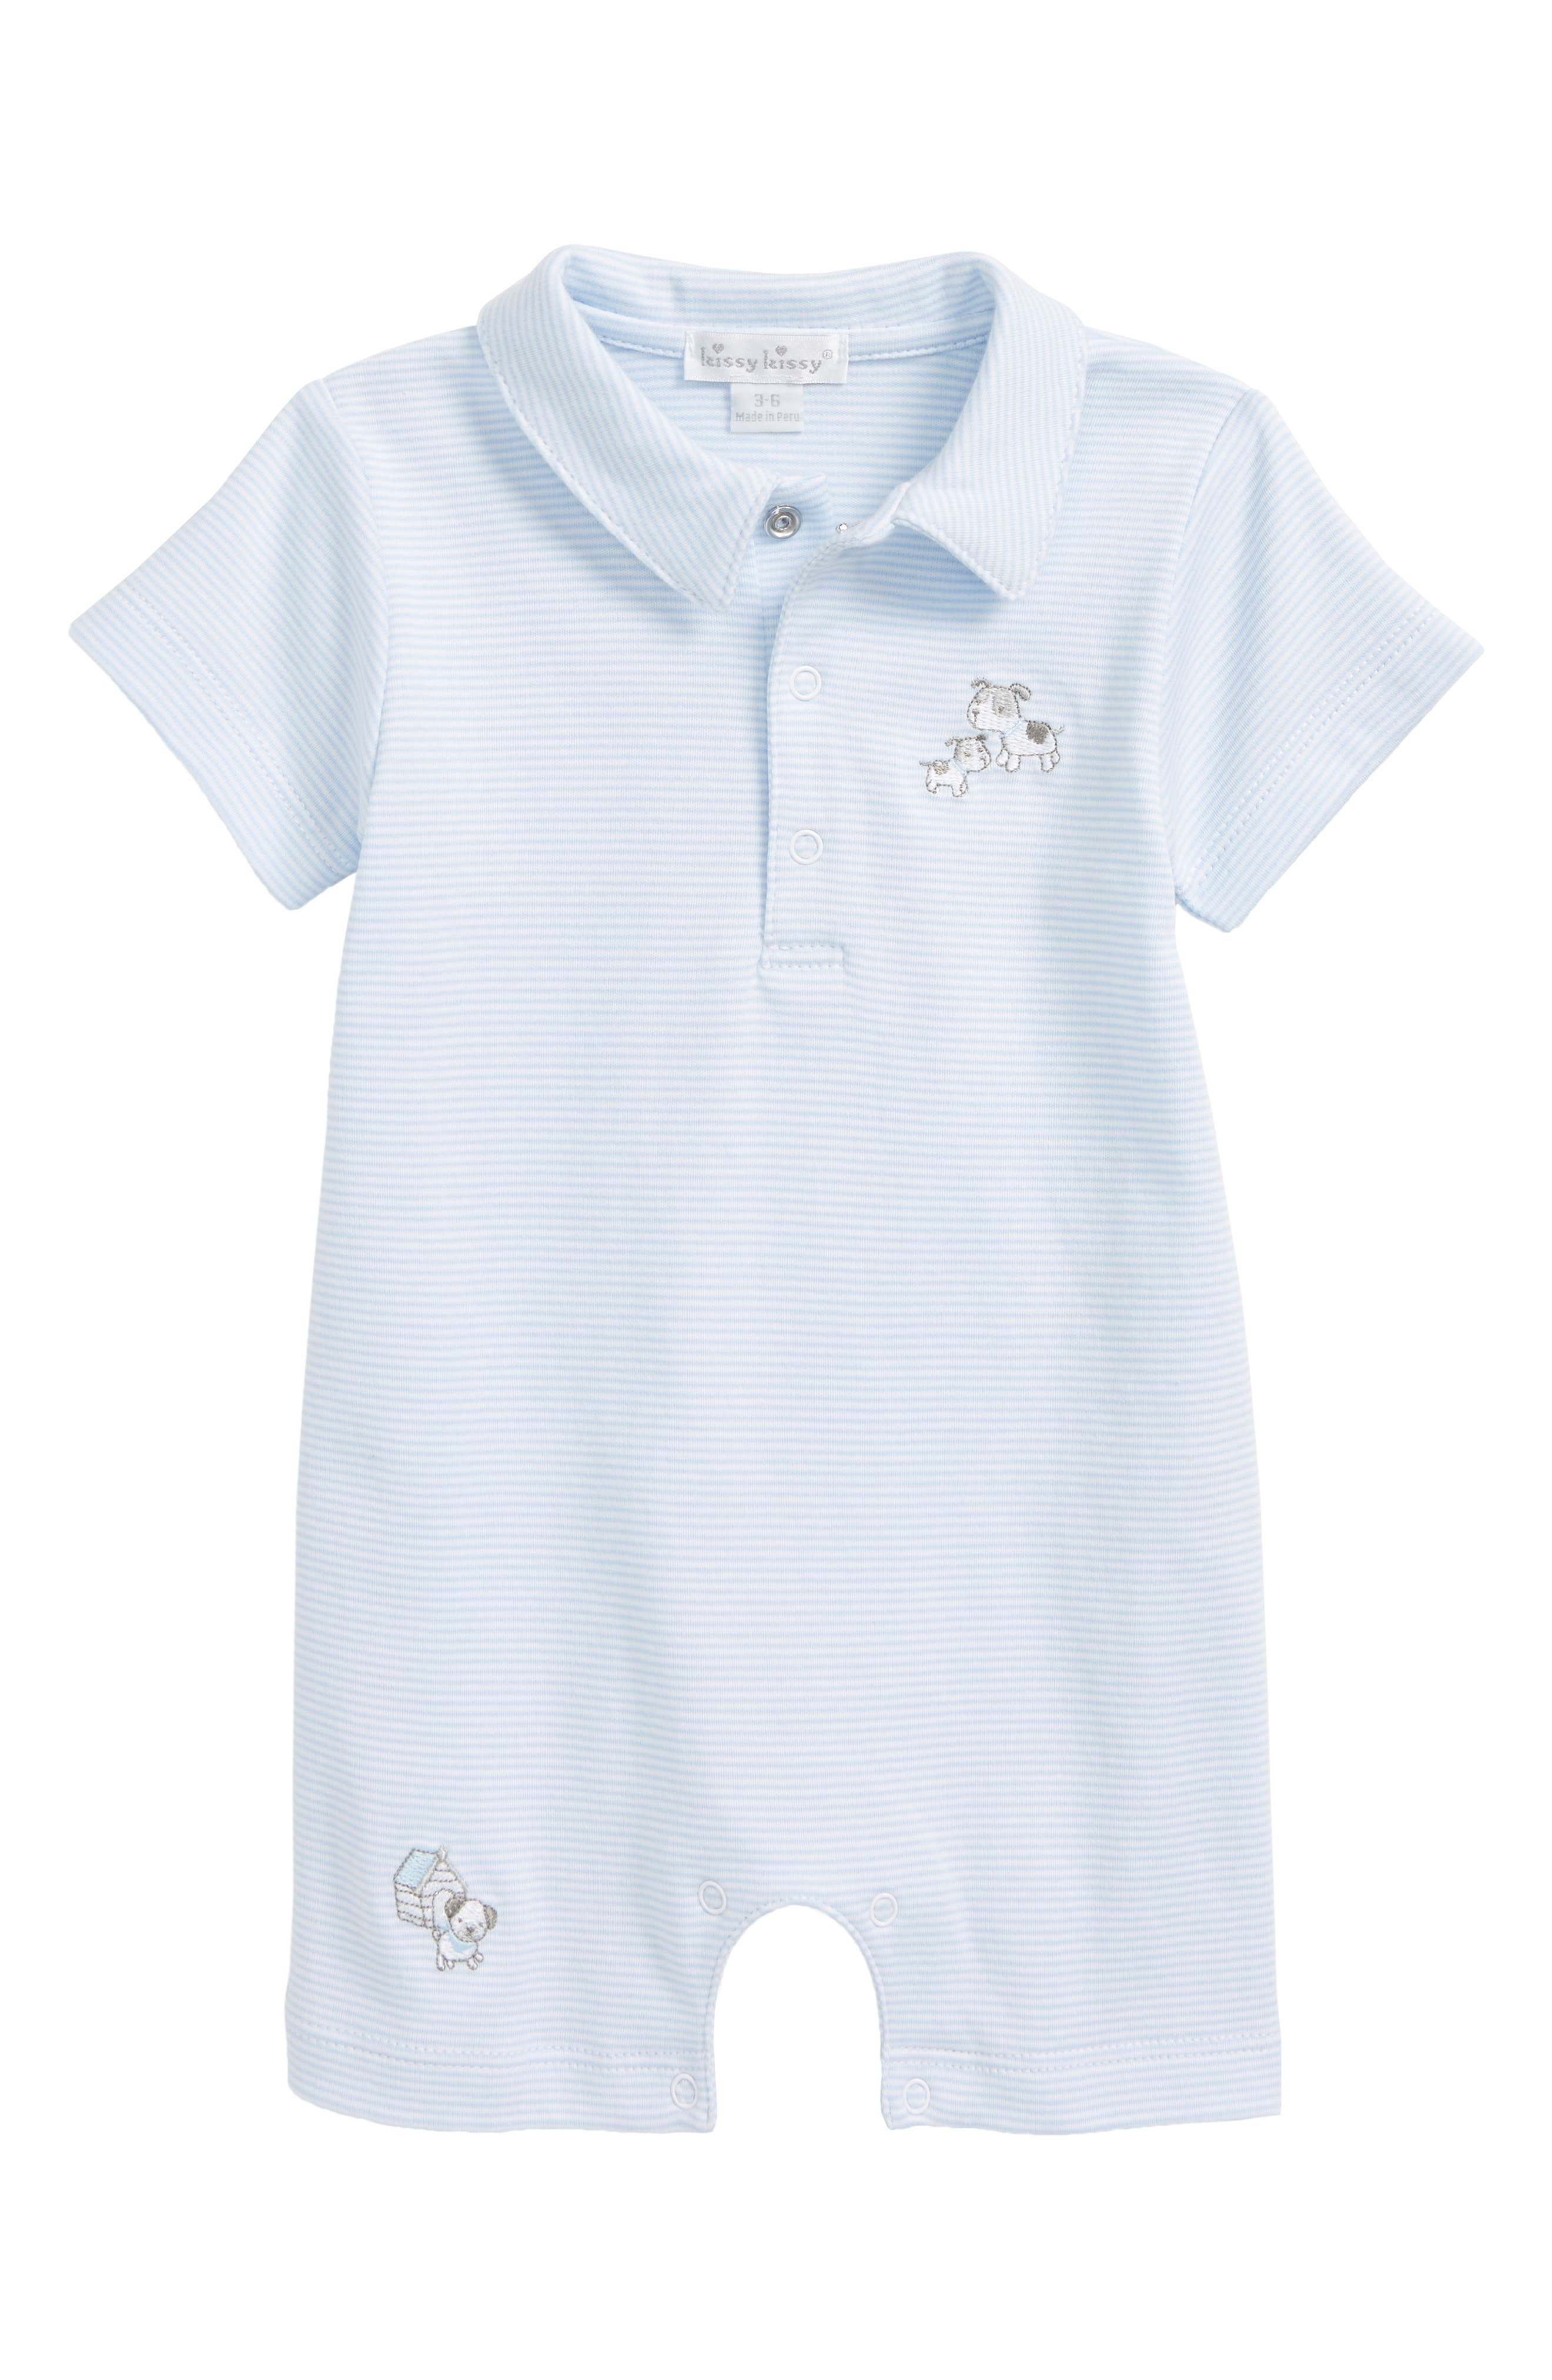 Dog Day Out Polo Romper,                             Main thumbnail 1, color,                             Light Blue